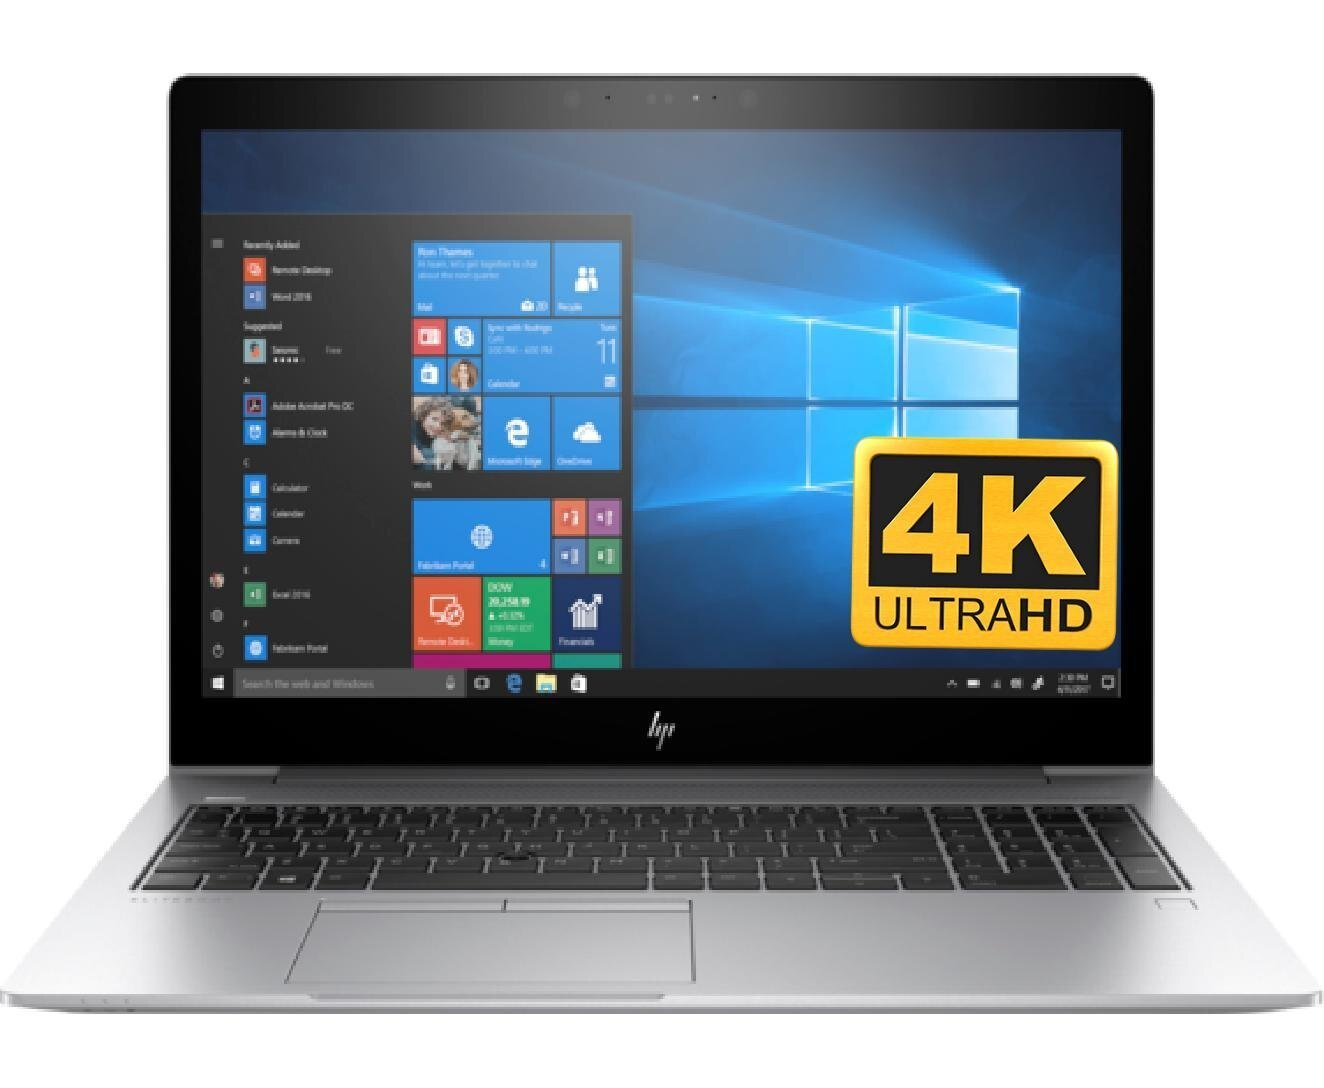 HP EliteBook 850 G5 Premium 15 6 UHD Laptop Notebook PC (Intel 8th Gen  i7-8550U Processor, 16GB RAM, 128GB SSD, 15 6